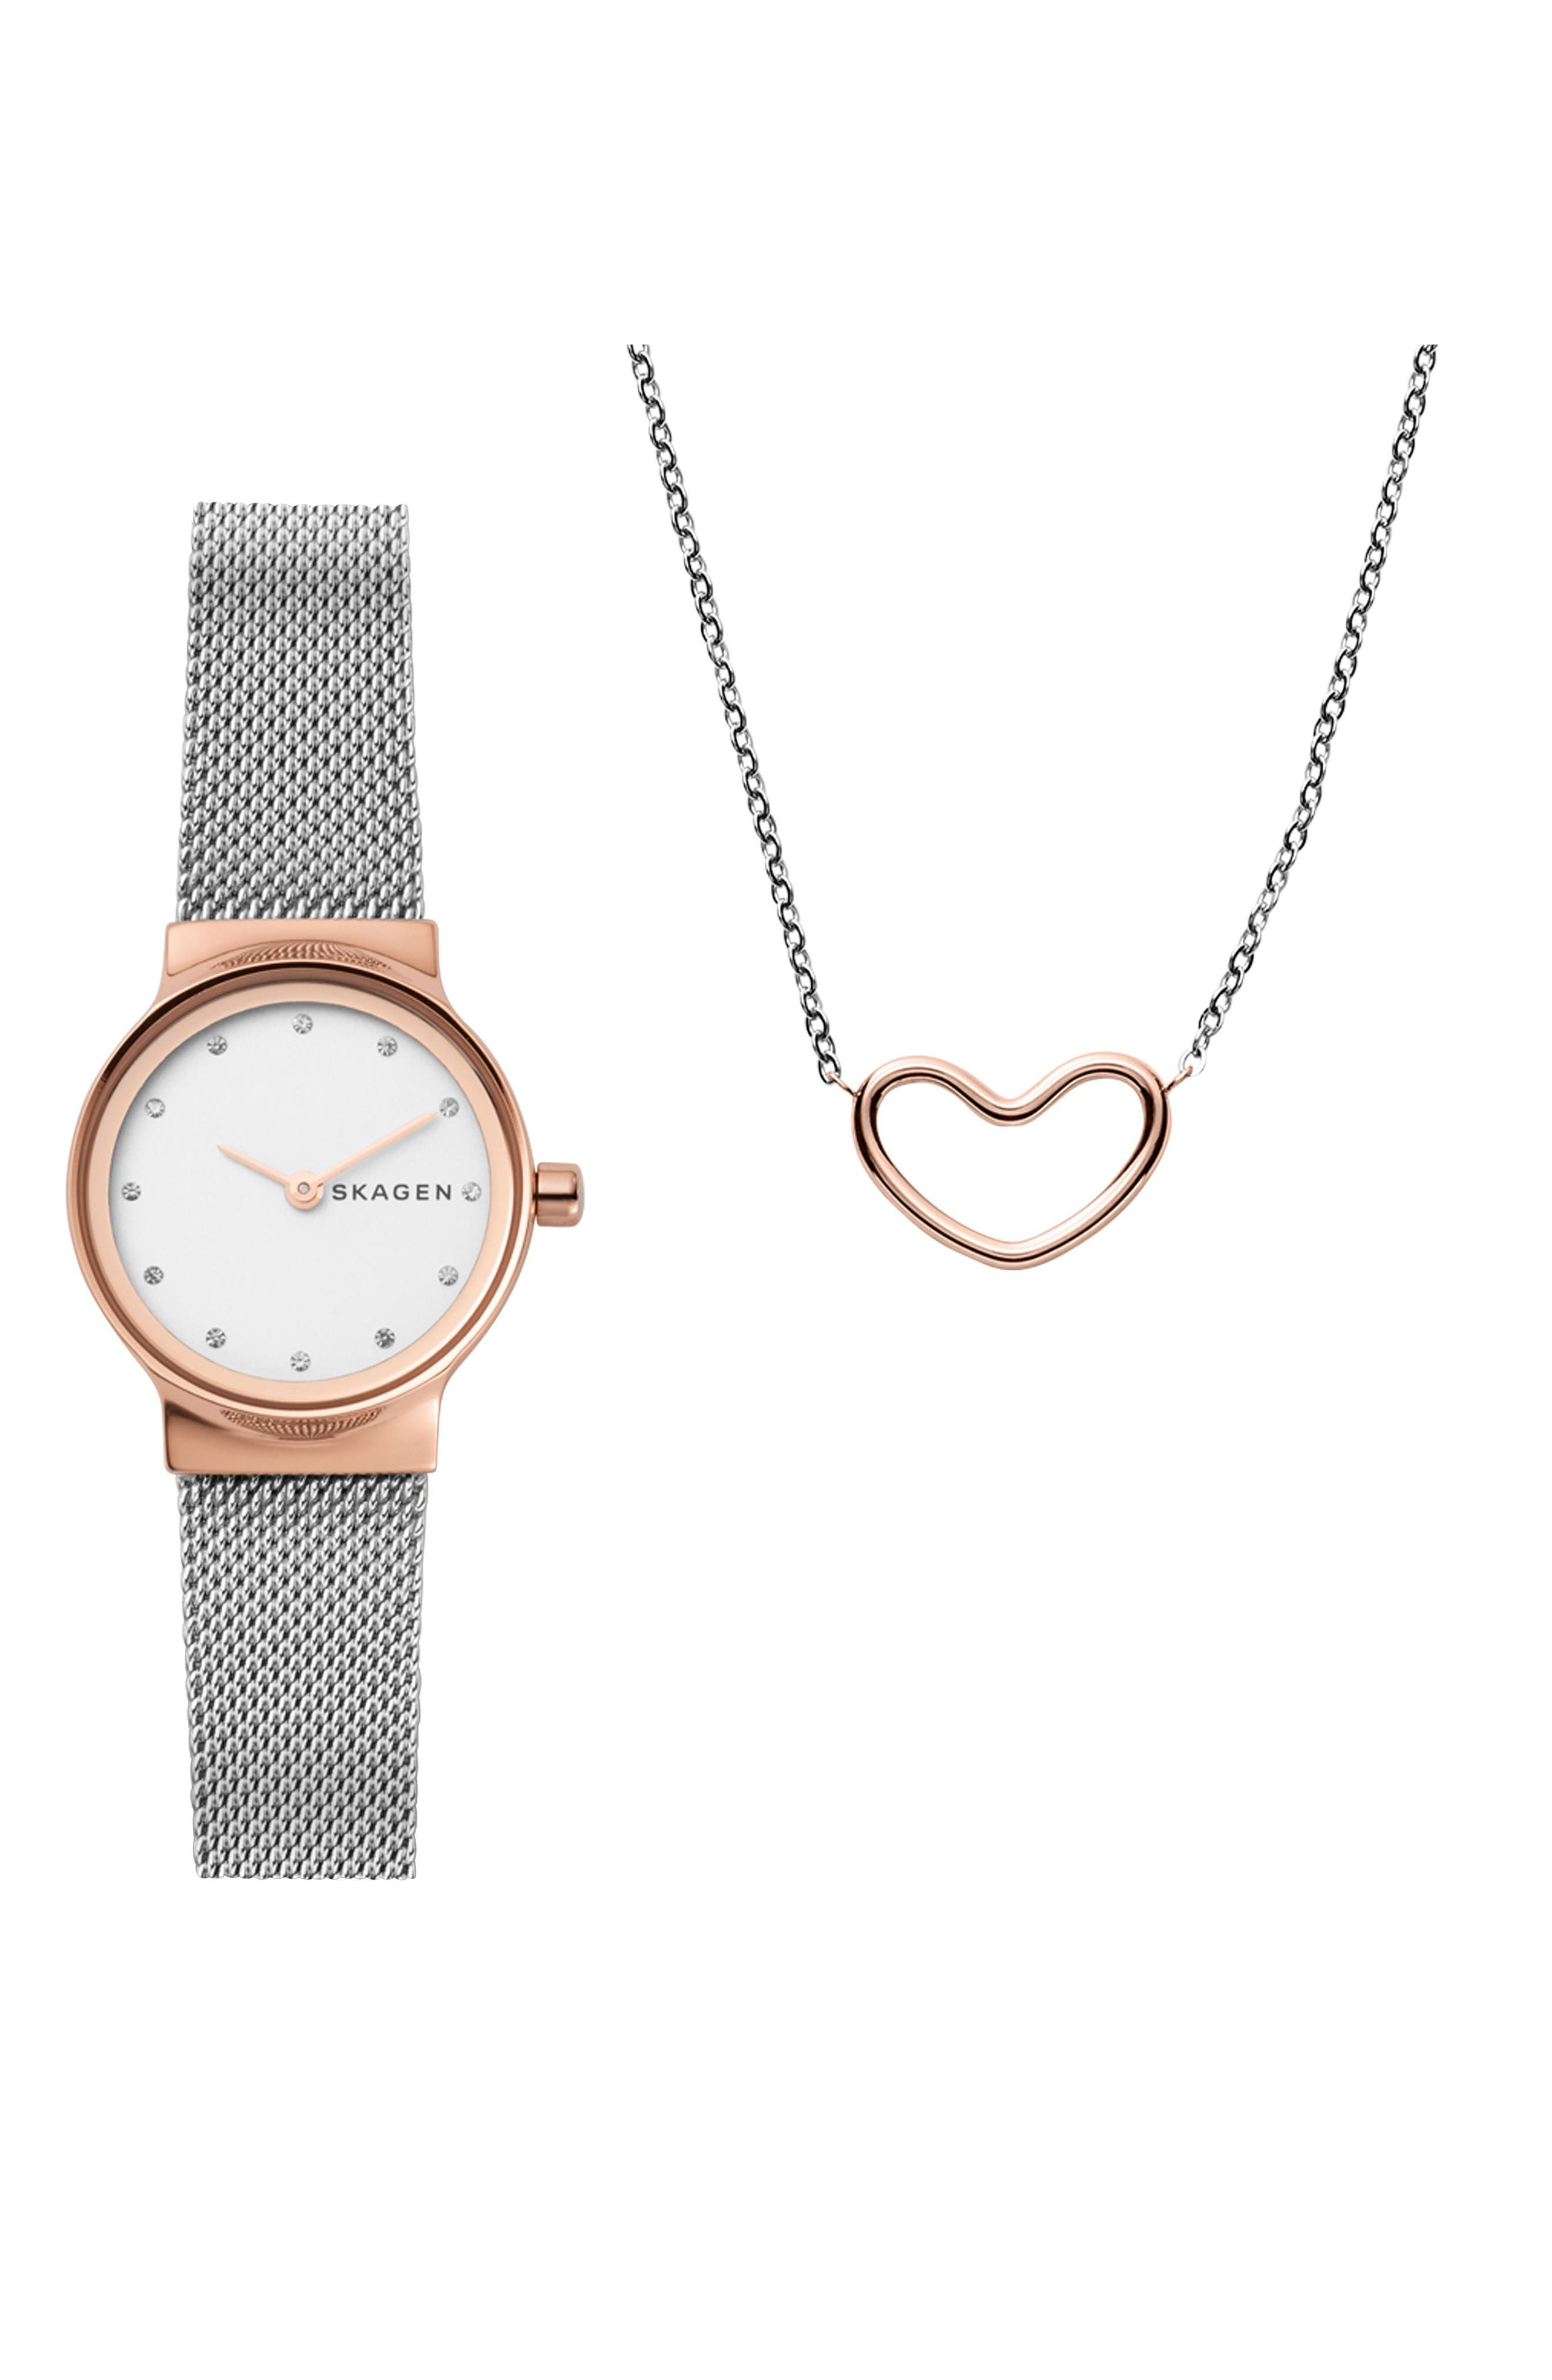 Freja Crystal Mesh Strap Watch & Necklace Set, 26mm,                         Main,                         color, Silver/ White/ Rose Gold